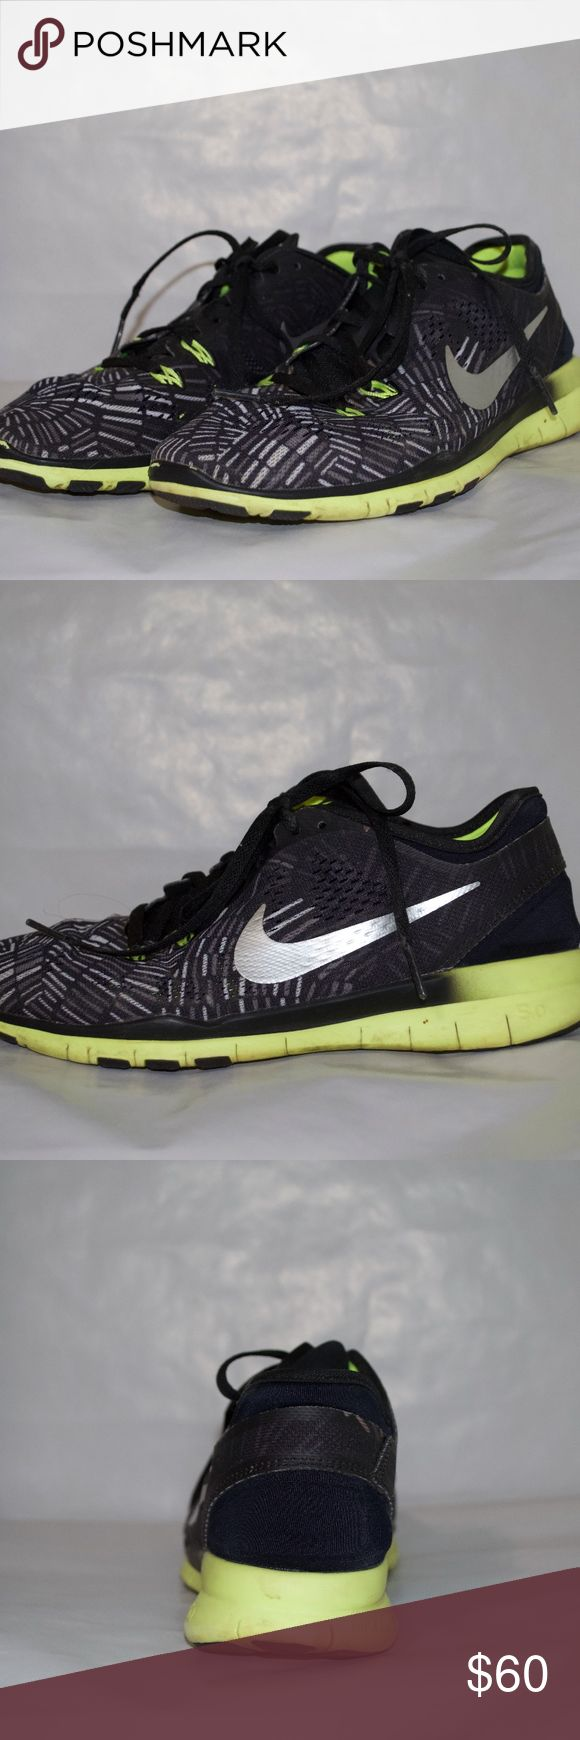 Nike Free Runs Nike Women's Free 5.0 Tr Fit 5 Prt Black/Metallic Silver/Volt Training Shoe. These shoes have been gently worn and will most definitely be cleaned up for whomever purchases them. I have most definitely worn them less than five times. These shoes will subtly stand out since they are black, but the design is very cool. I received these as a gift from my ex boyfriend, which is why I am giving them away (lol). They are perfect for the gym or running errands! Nike Shoes Sneakers